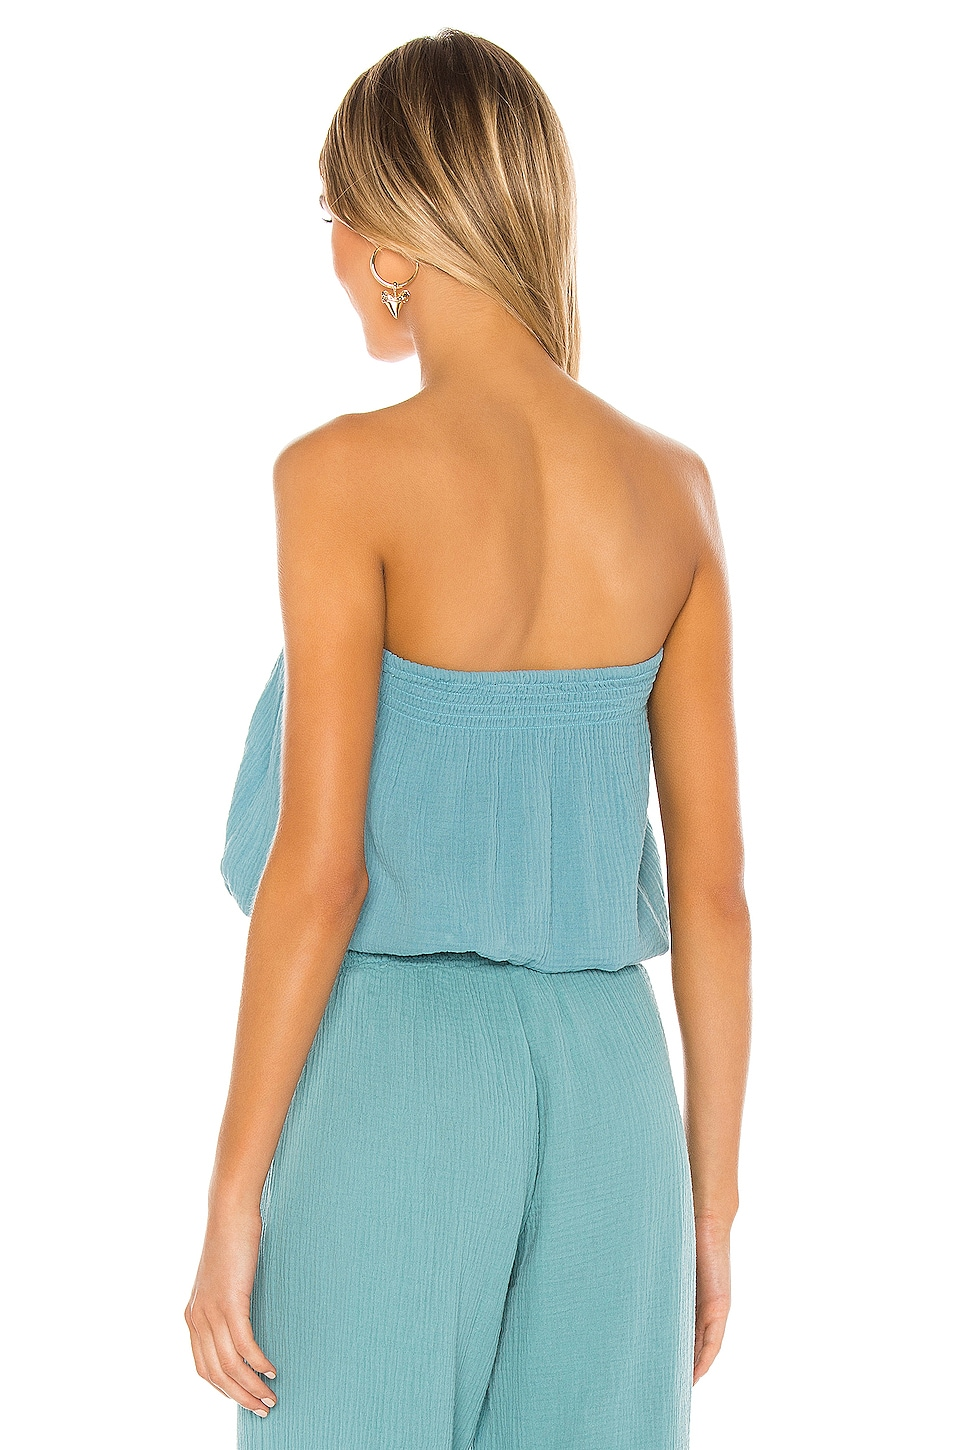 Beach Gauze Strapless Top, view 3, click to view large image.